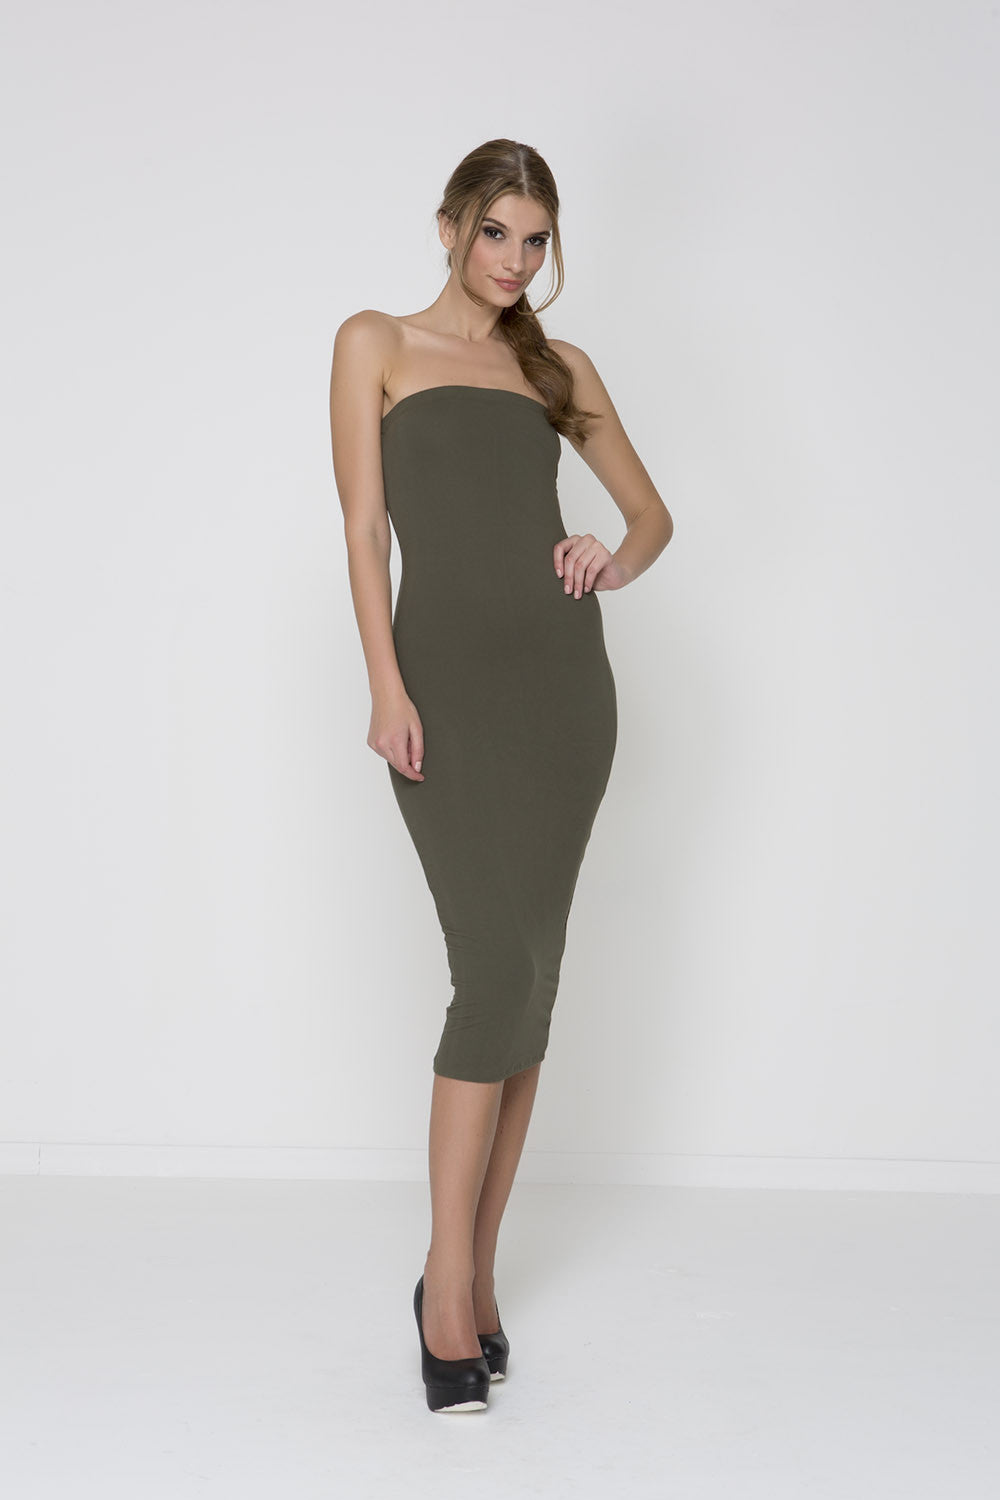 Body Con Knit Dress - Olive